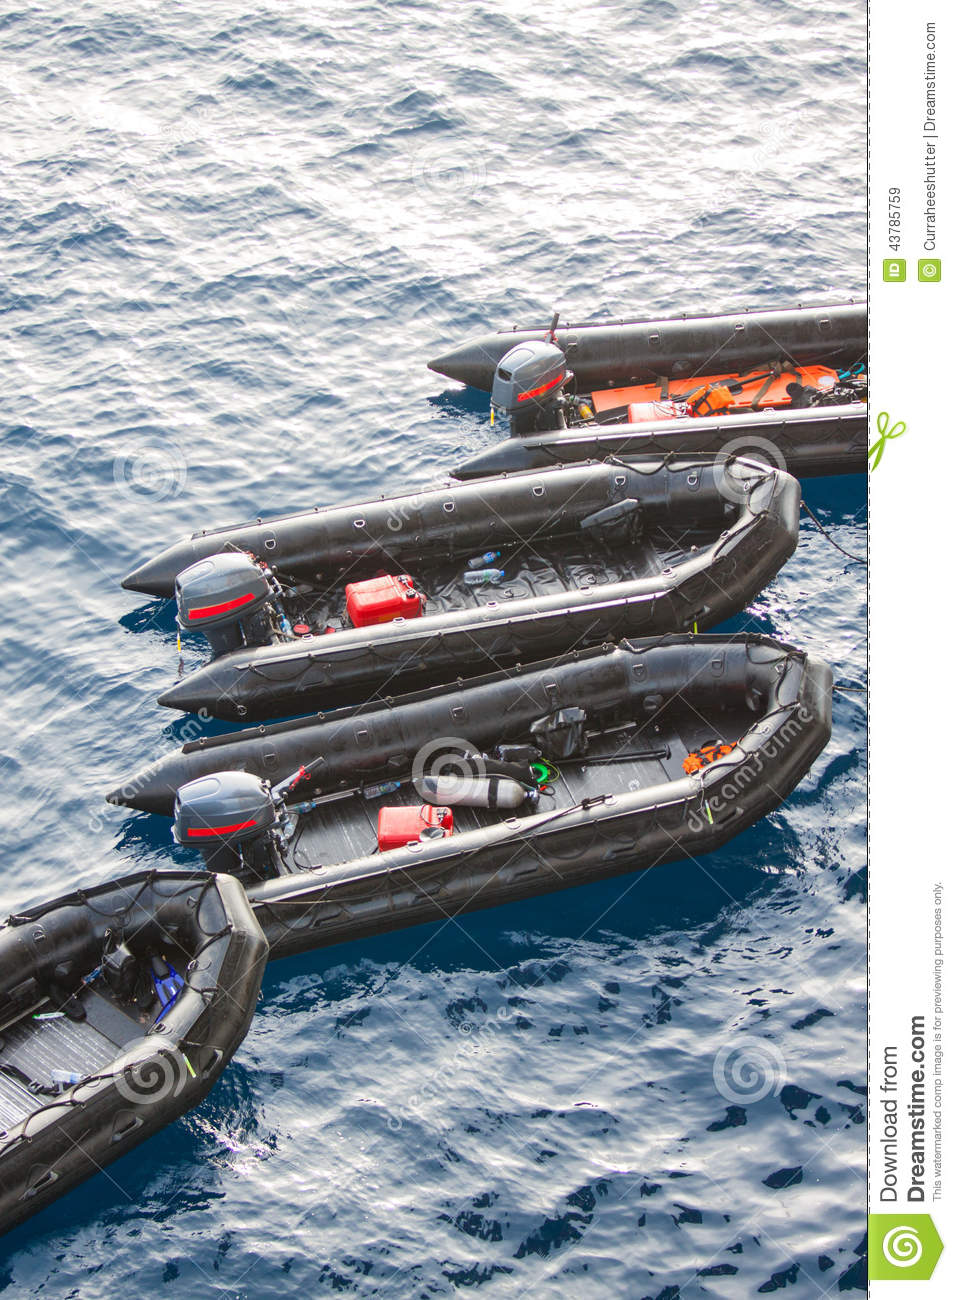 Life Boats In The Sea For Help And Support People. Rescue Boats In The Sea, Rubber Boat With The ...